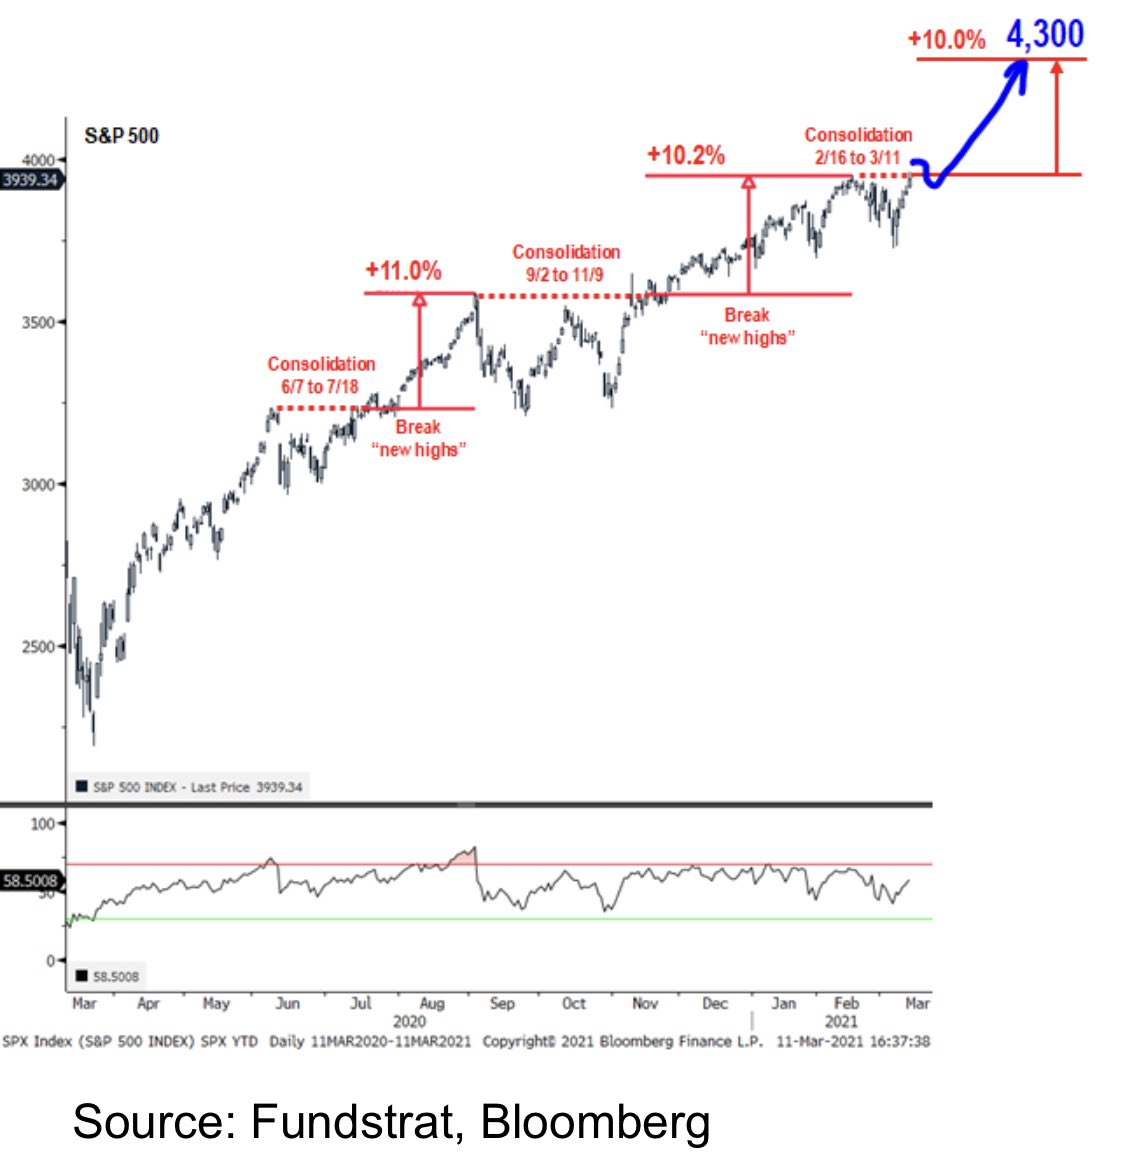 Fundstrat looking for 10% stock market gain after S&P 500 breakout to record high